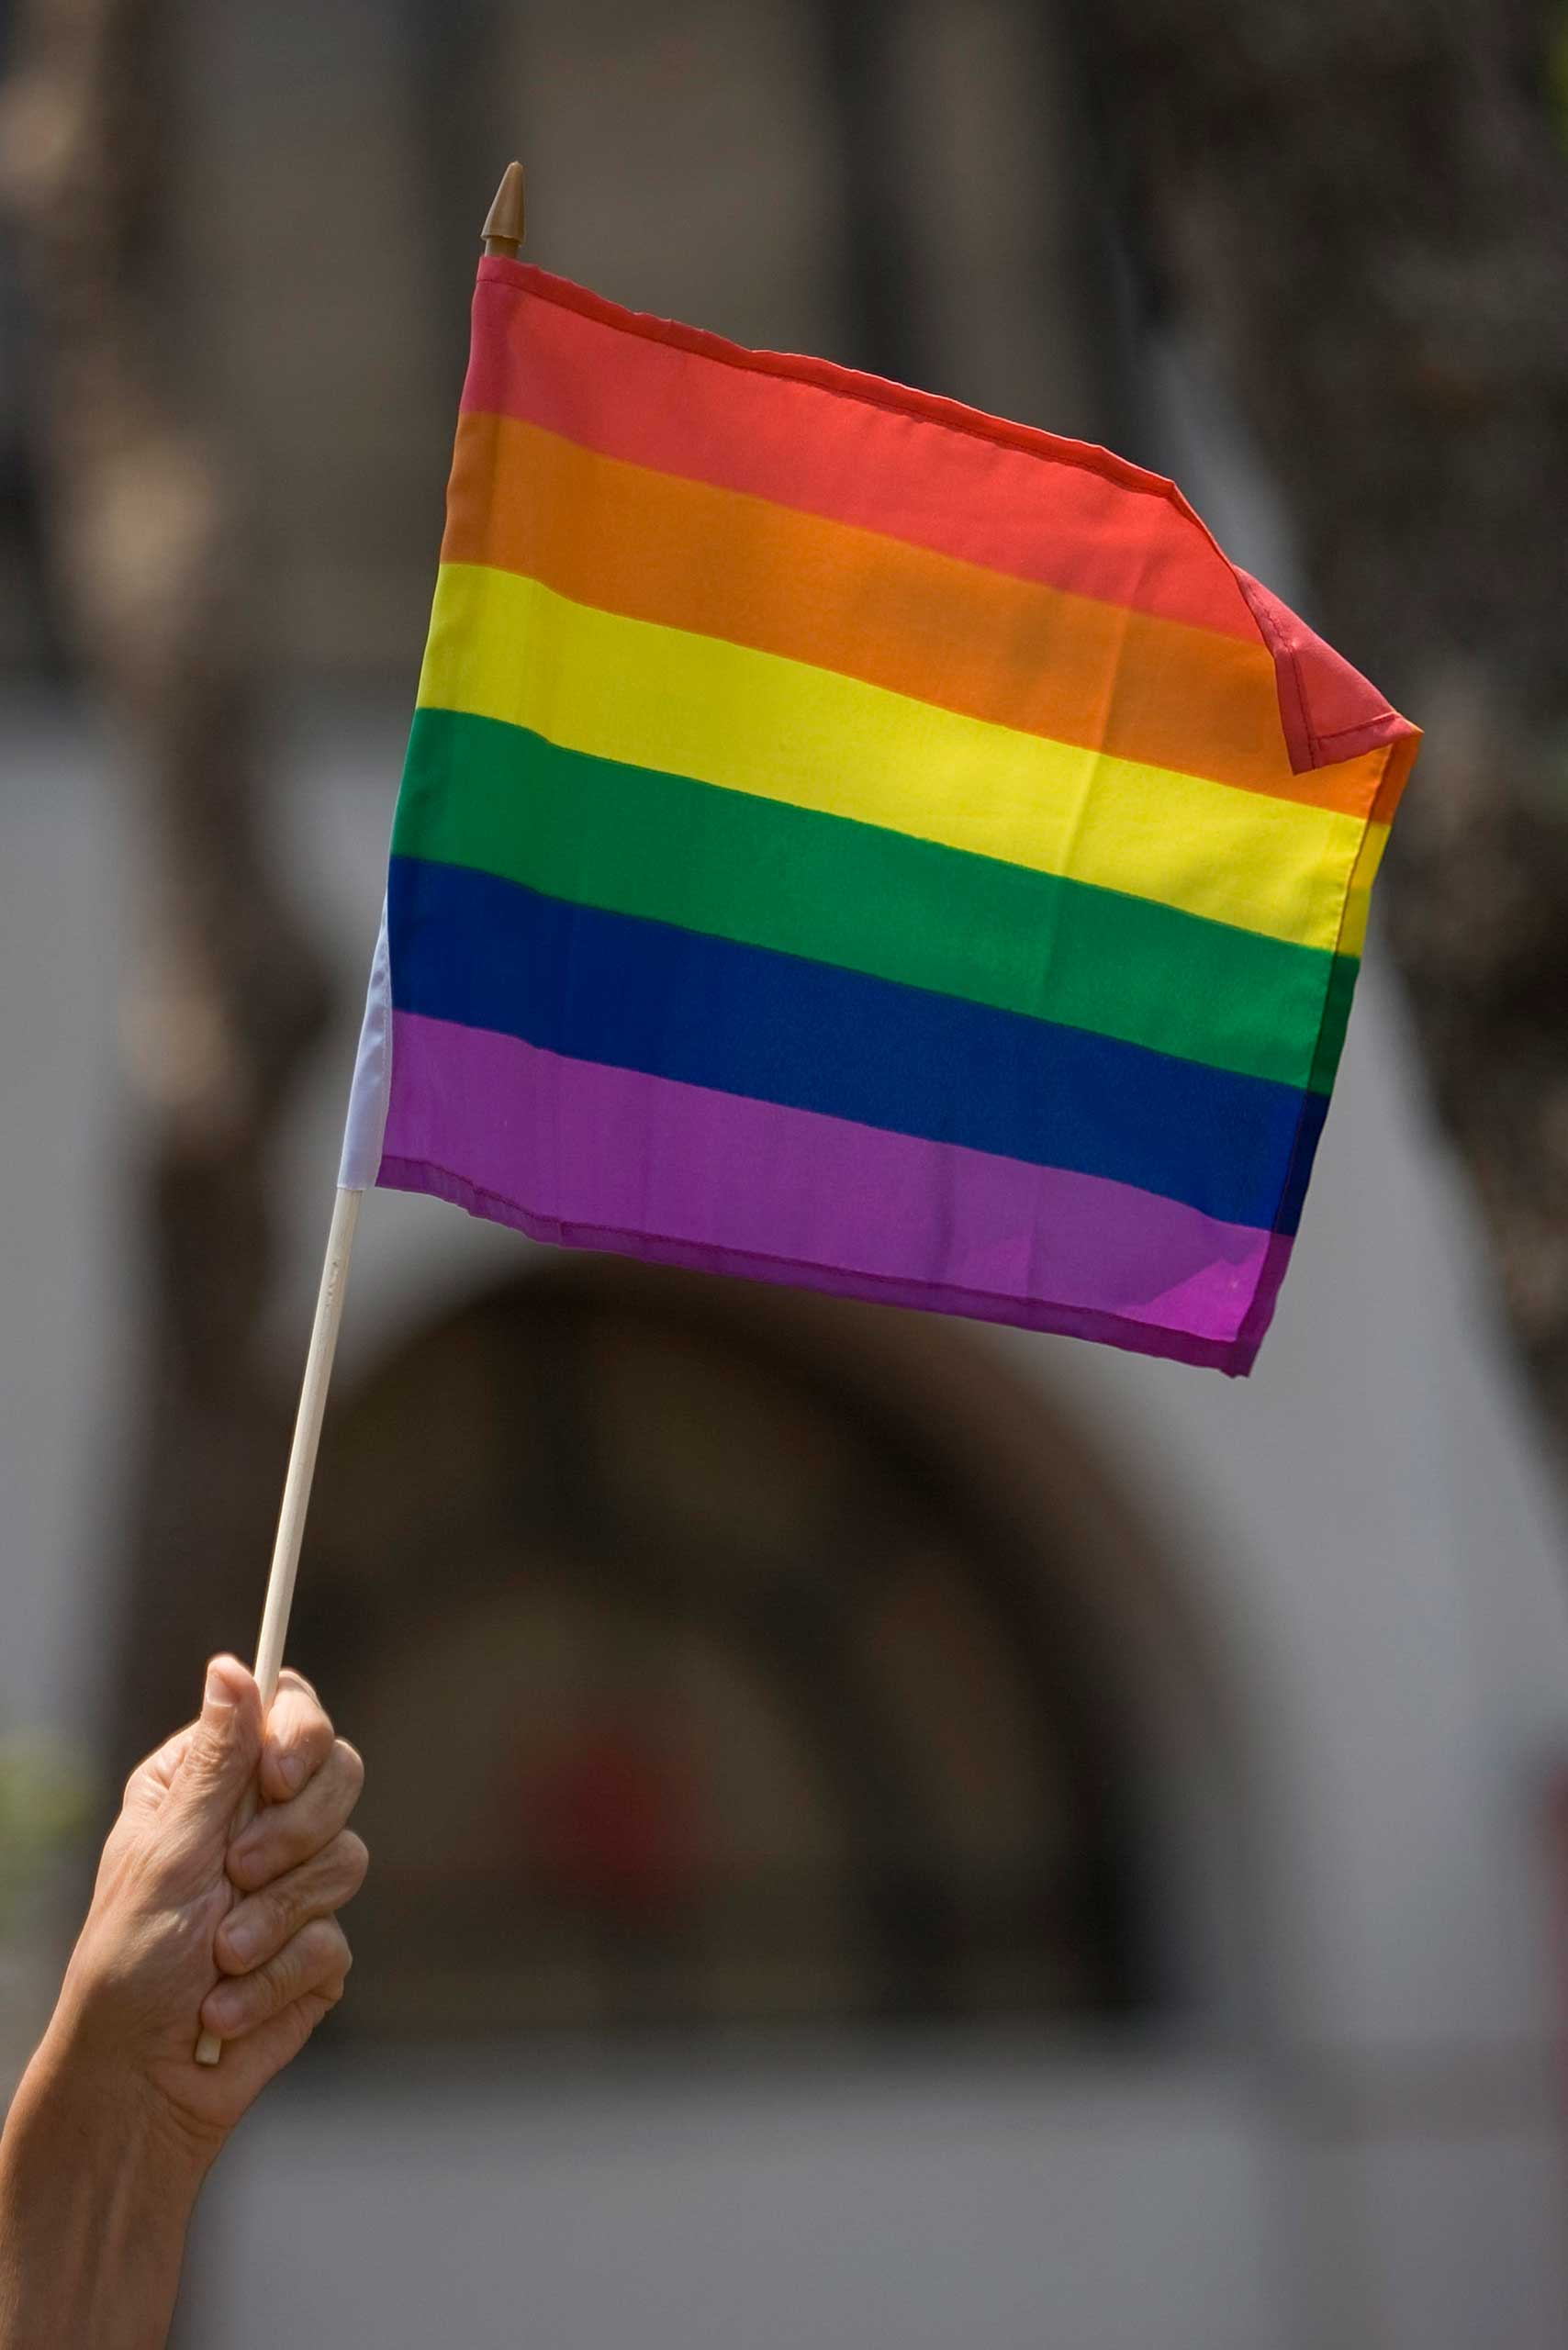 A reveler holds a gay pride flag during the 38th Annual San Francisco Lesbian, Gay, Bisexual, Transgender (LGBT) Pride Celebration Parade on Market Street, June 29, 2008 in San Francisco, California.